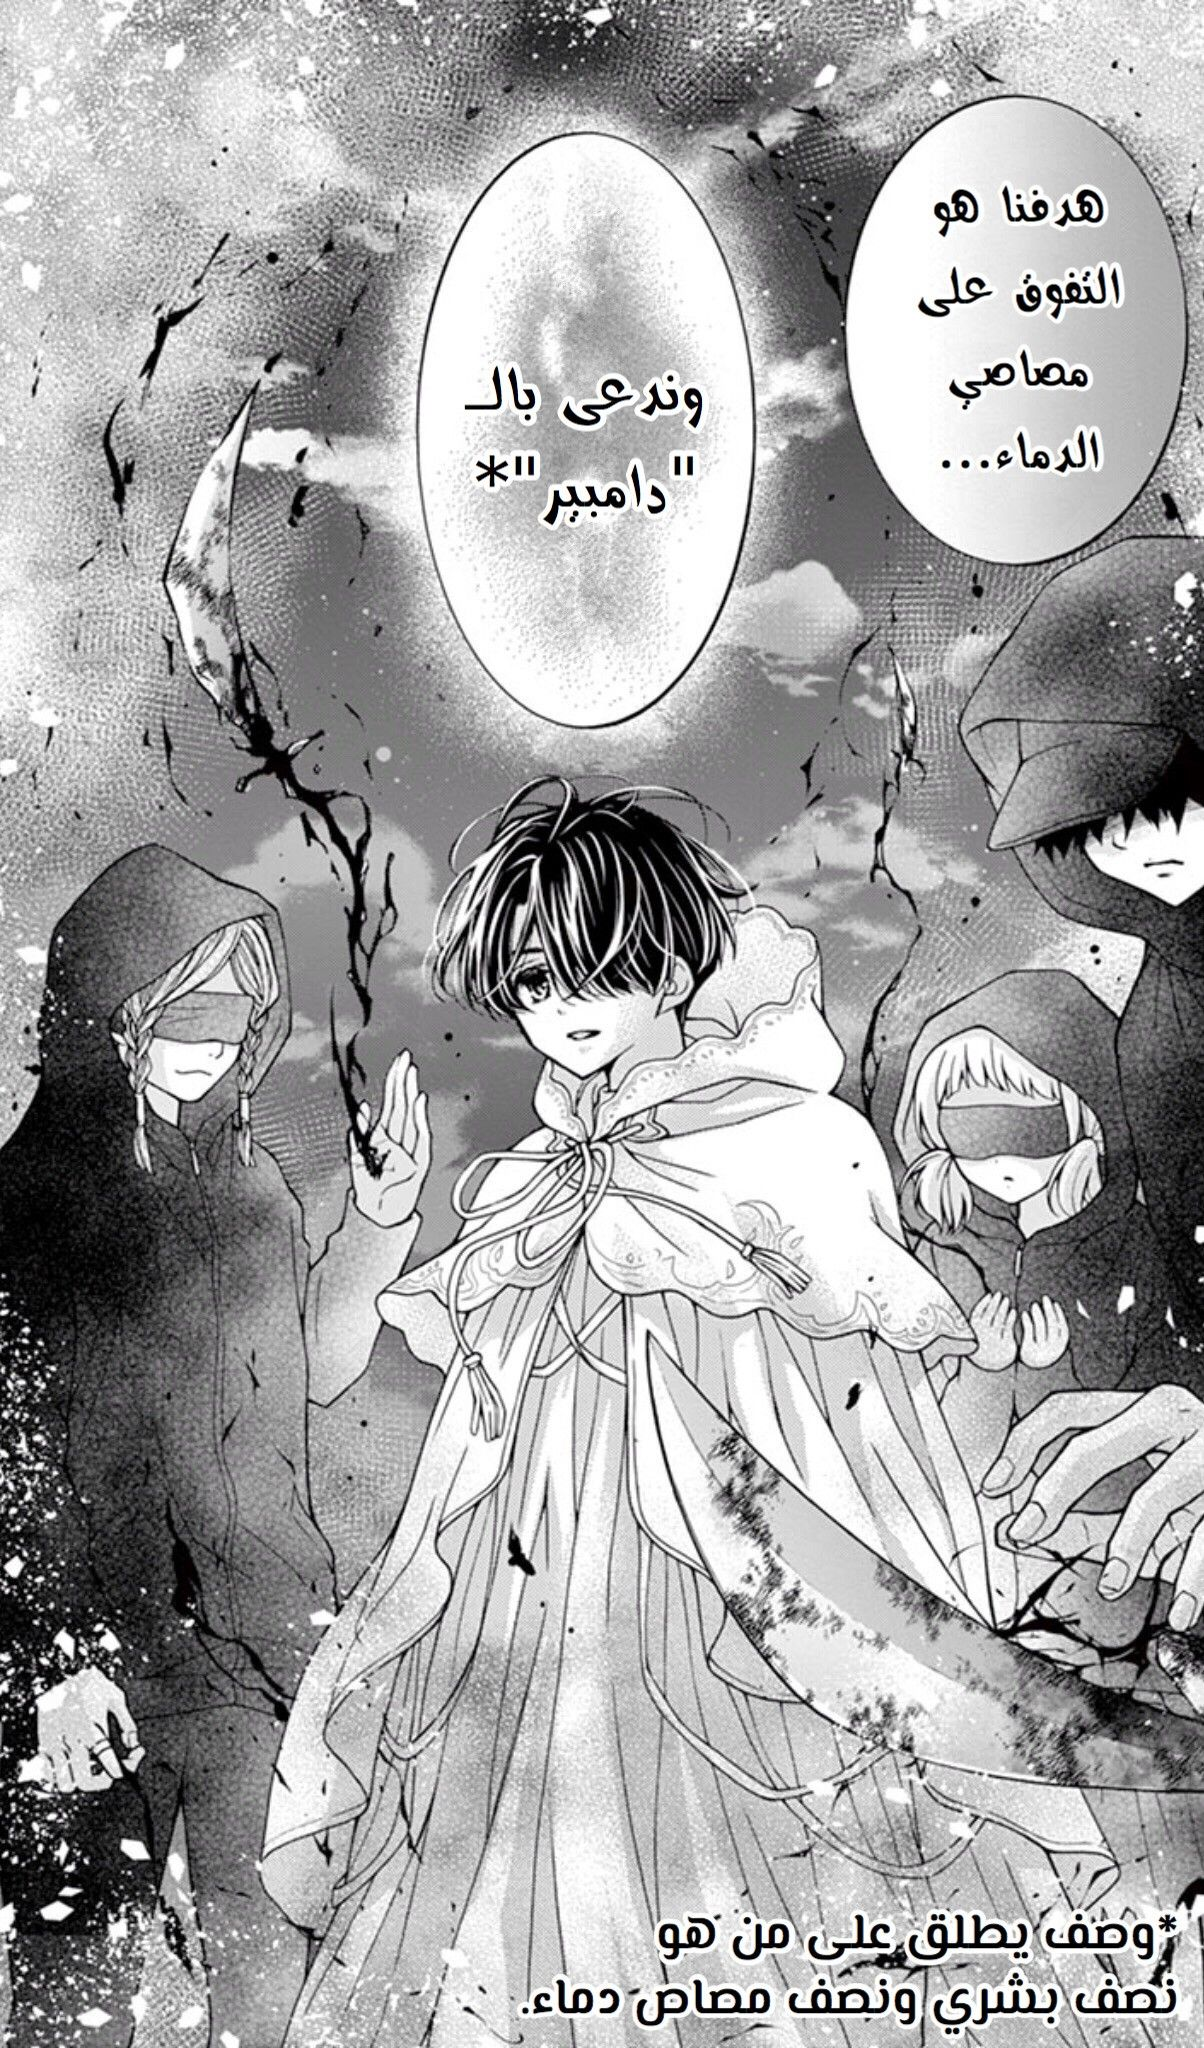 Pin by Hiba_chi13 on Manga in 2020 Movie posters, Poster